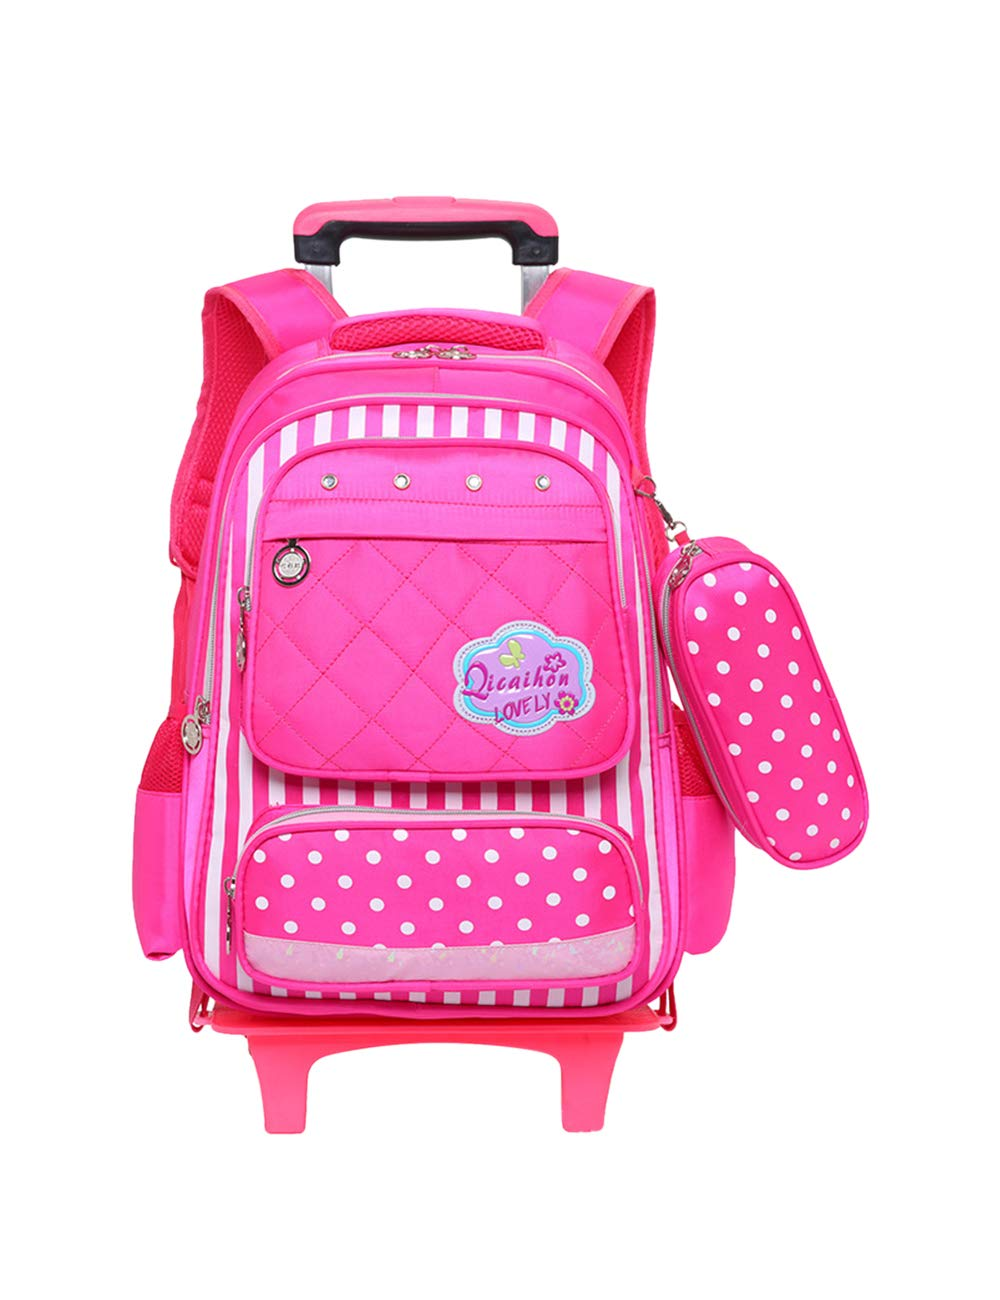 pink Red One size Trolley Backpack School Bags Laptop Bag  Zhhlaixing Six Wheels Rolling Backpack Nylon Kids School Bag Waterproof Hiking Casual for Boys Girls